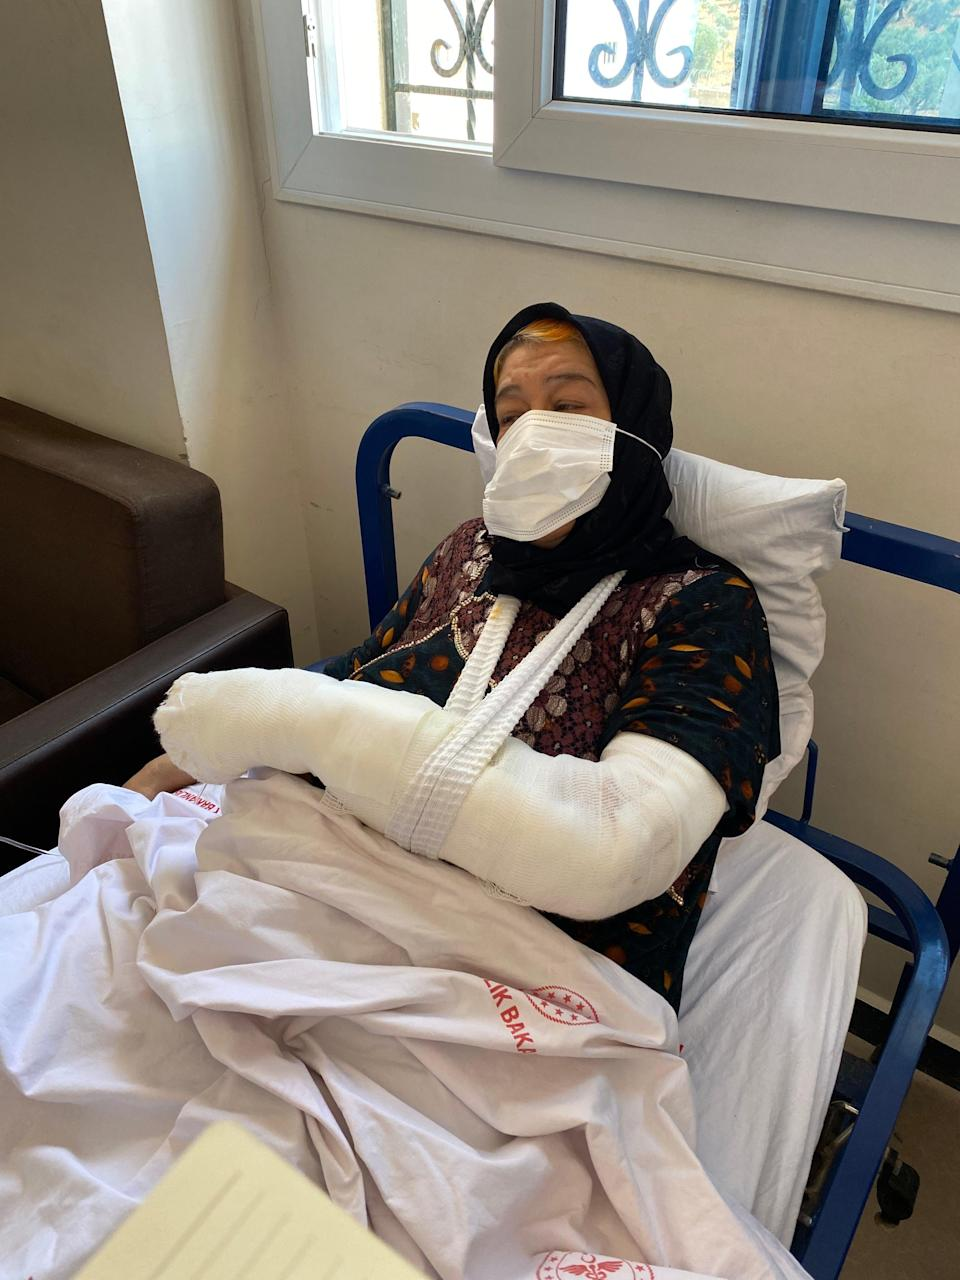 Daid al Kamal, 60,  went to the hospital to recover from shock after her neighbourhood was struck by a barrage of rockets in Afrin, northwest Syria. Then rockets hit the hospital. She recovers at another hospital (Borzou Daragahi)